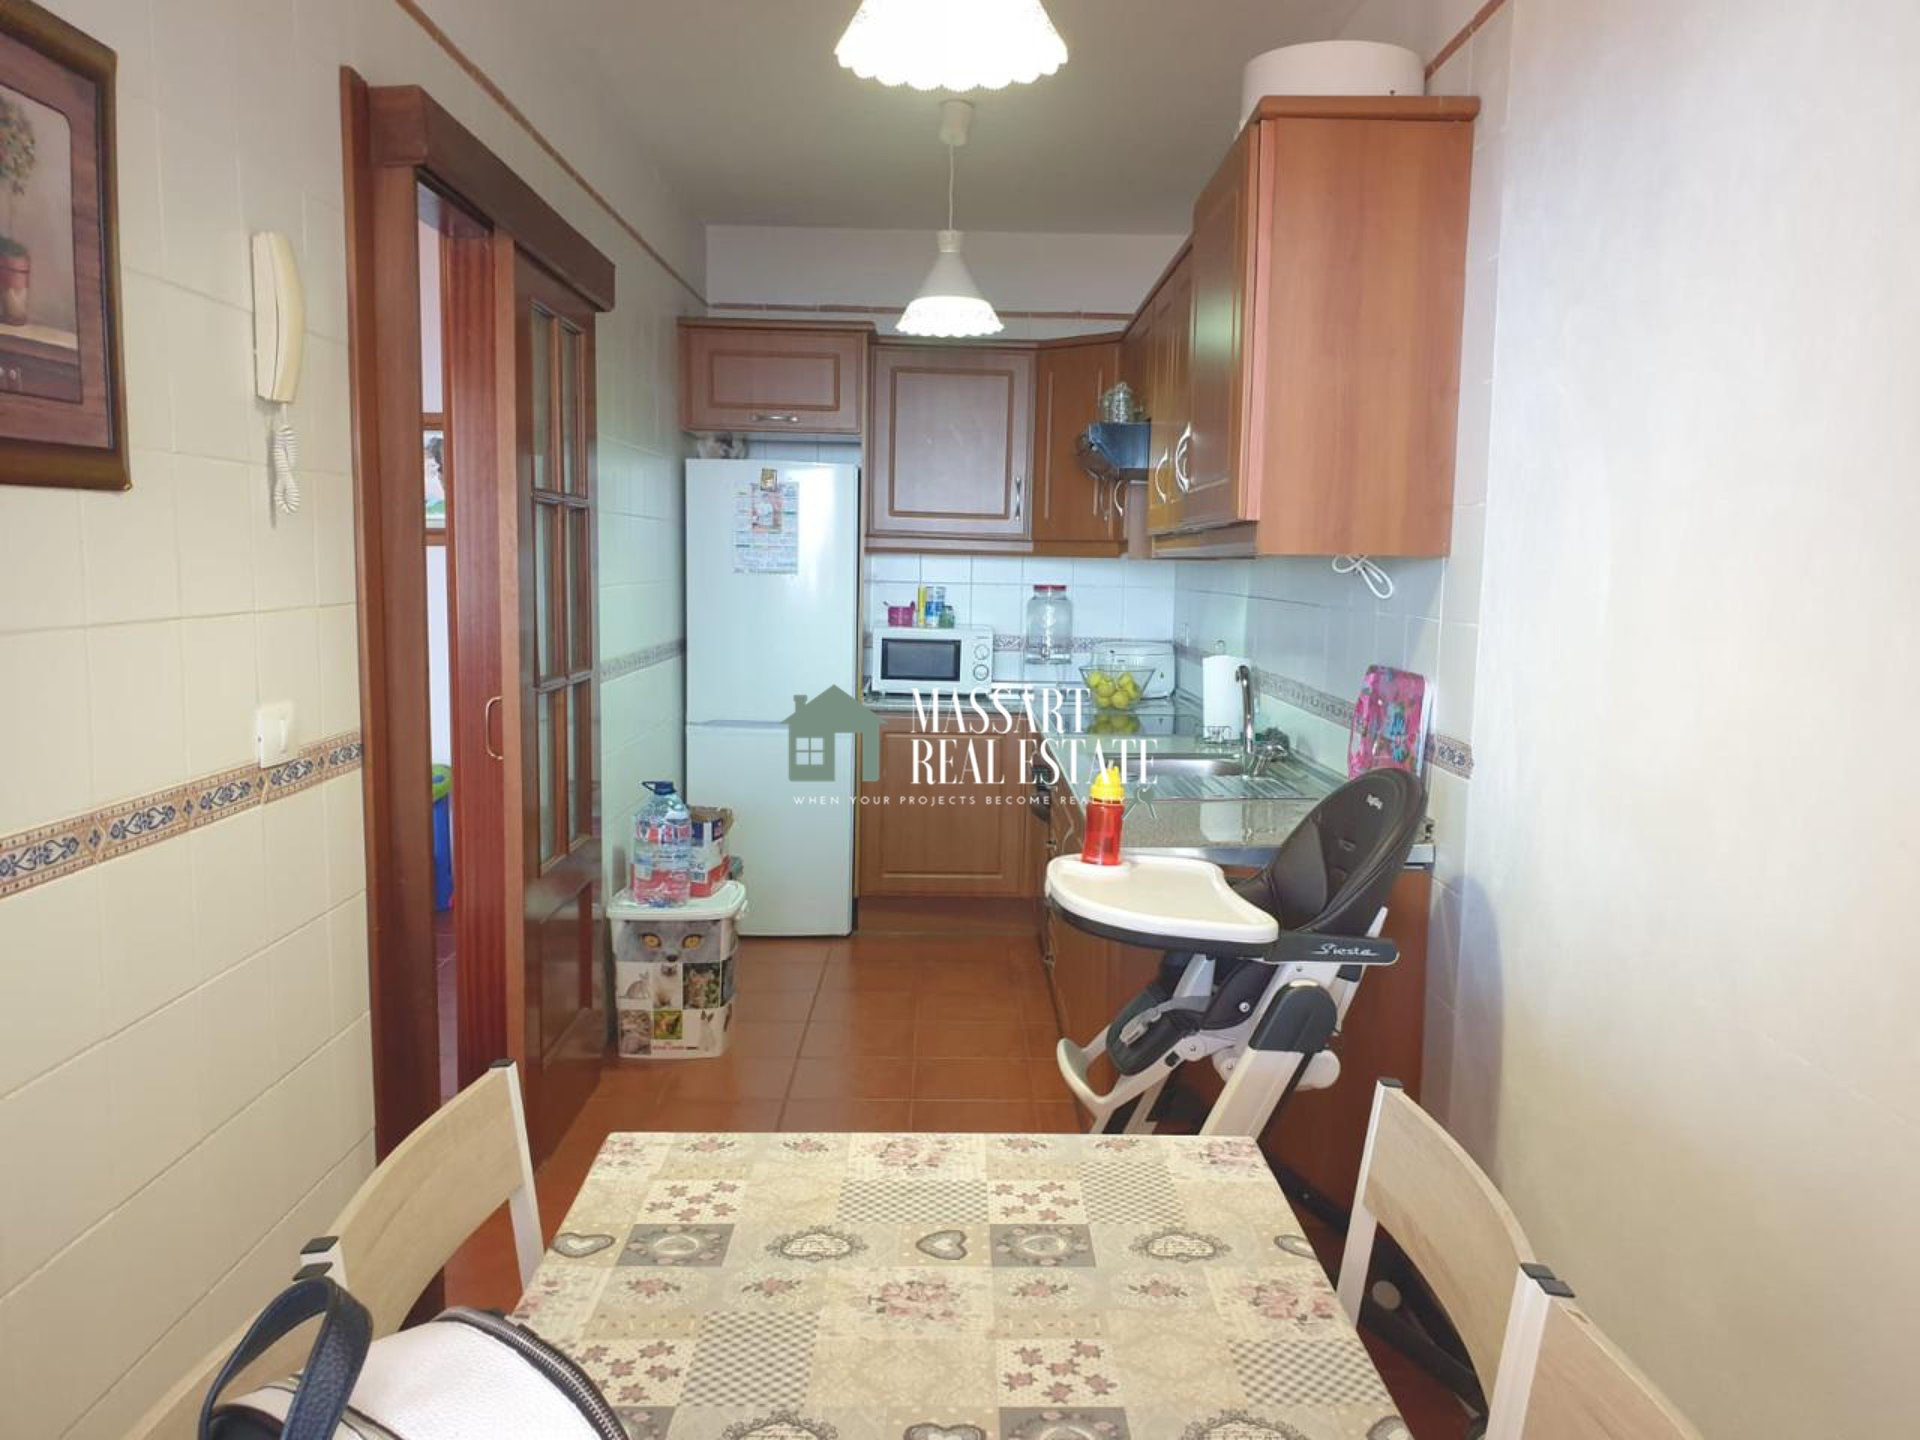 Fully furnished 90 m2 apartment located in a quiet area of Granadilla.